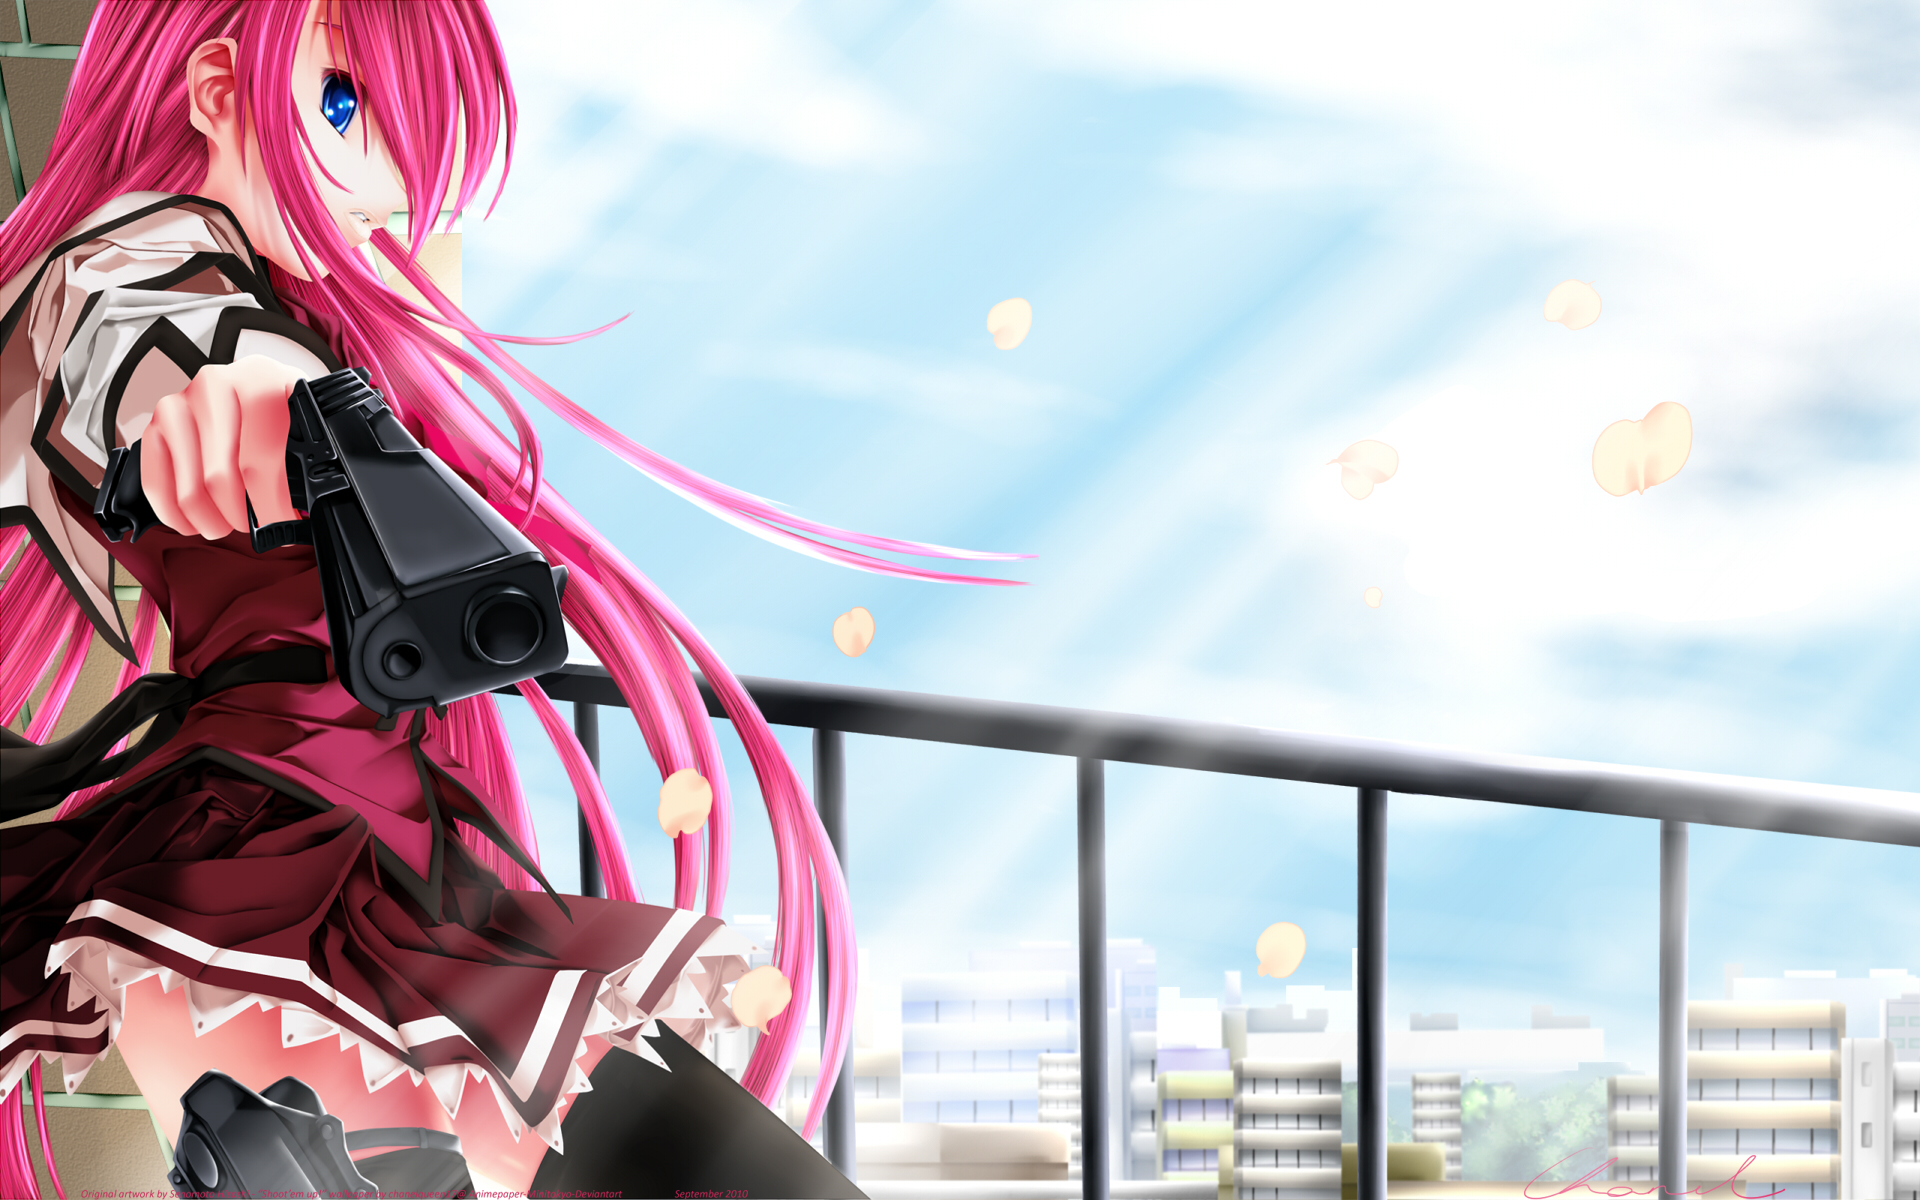 Anime Girl with Gun HD Wallpaper | anime | Pinterest | Guns, Anime